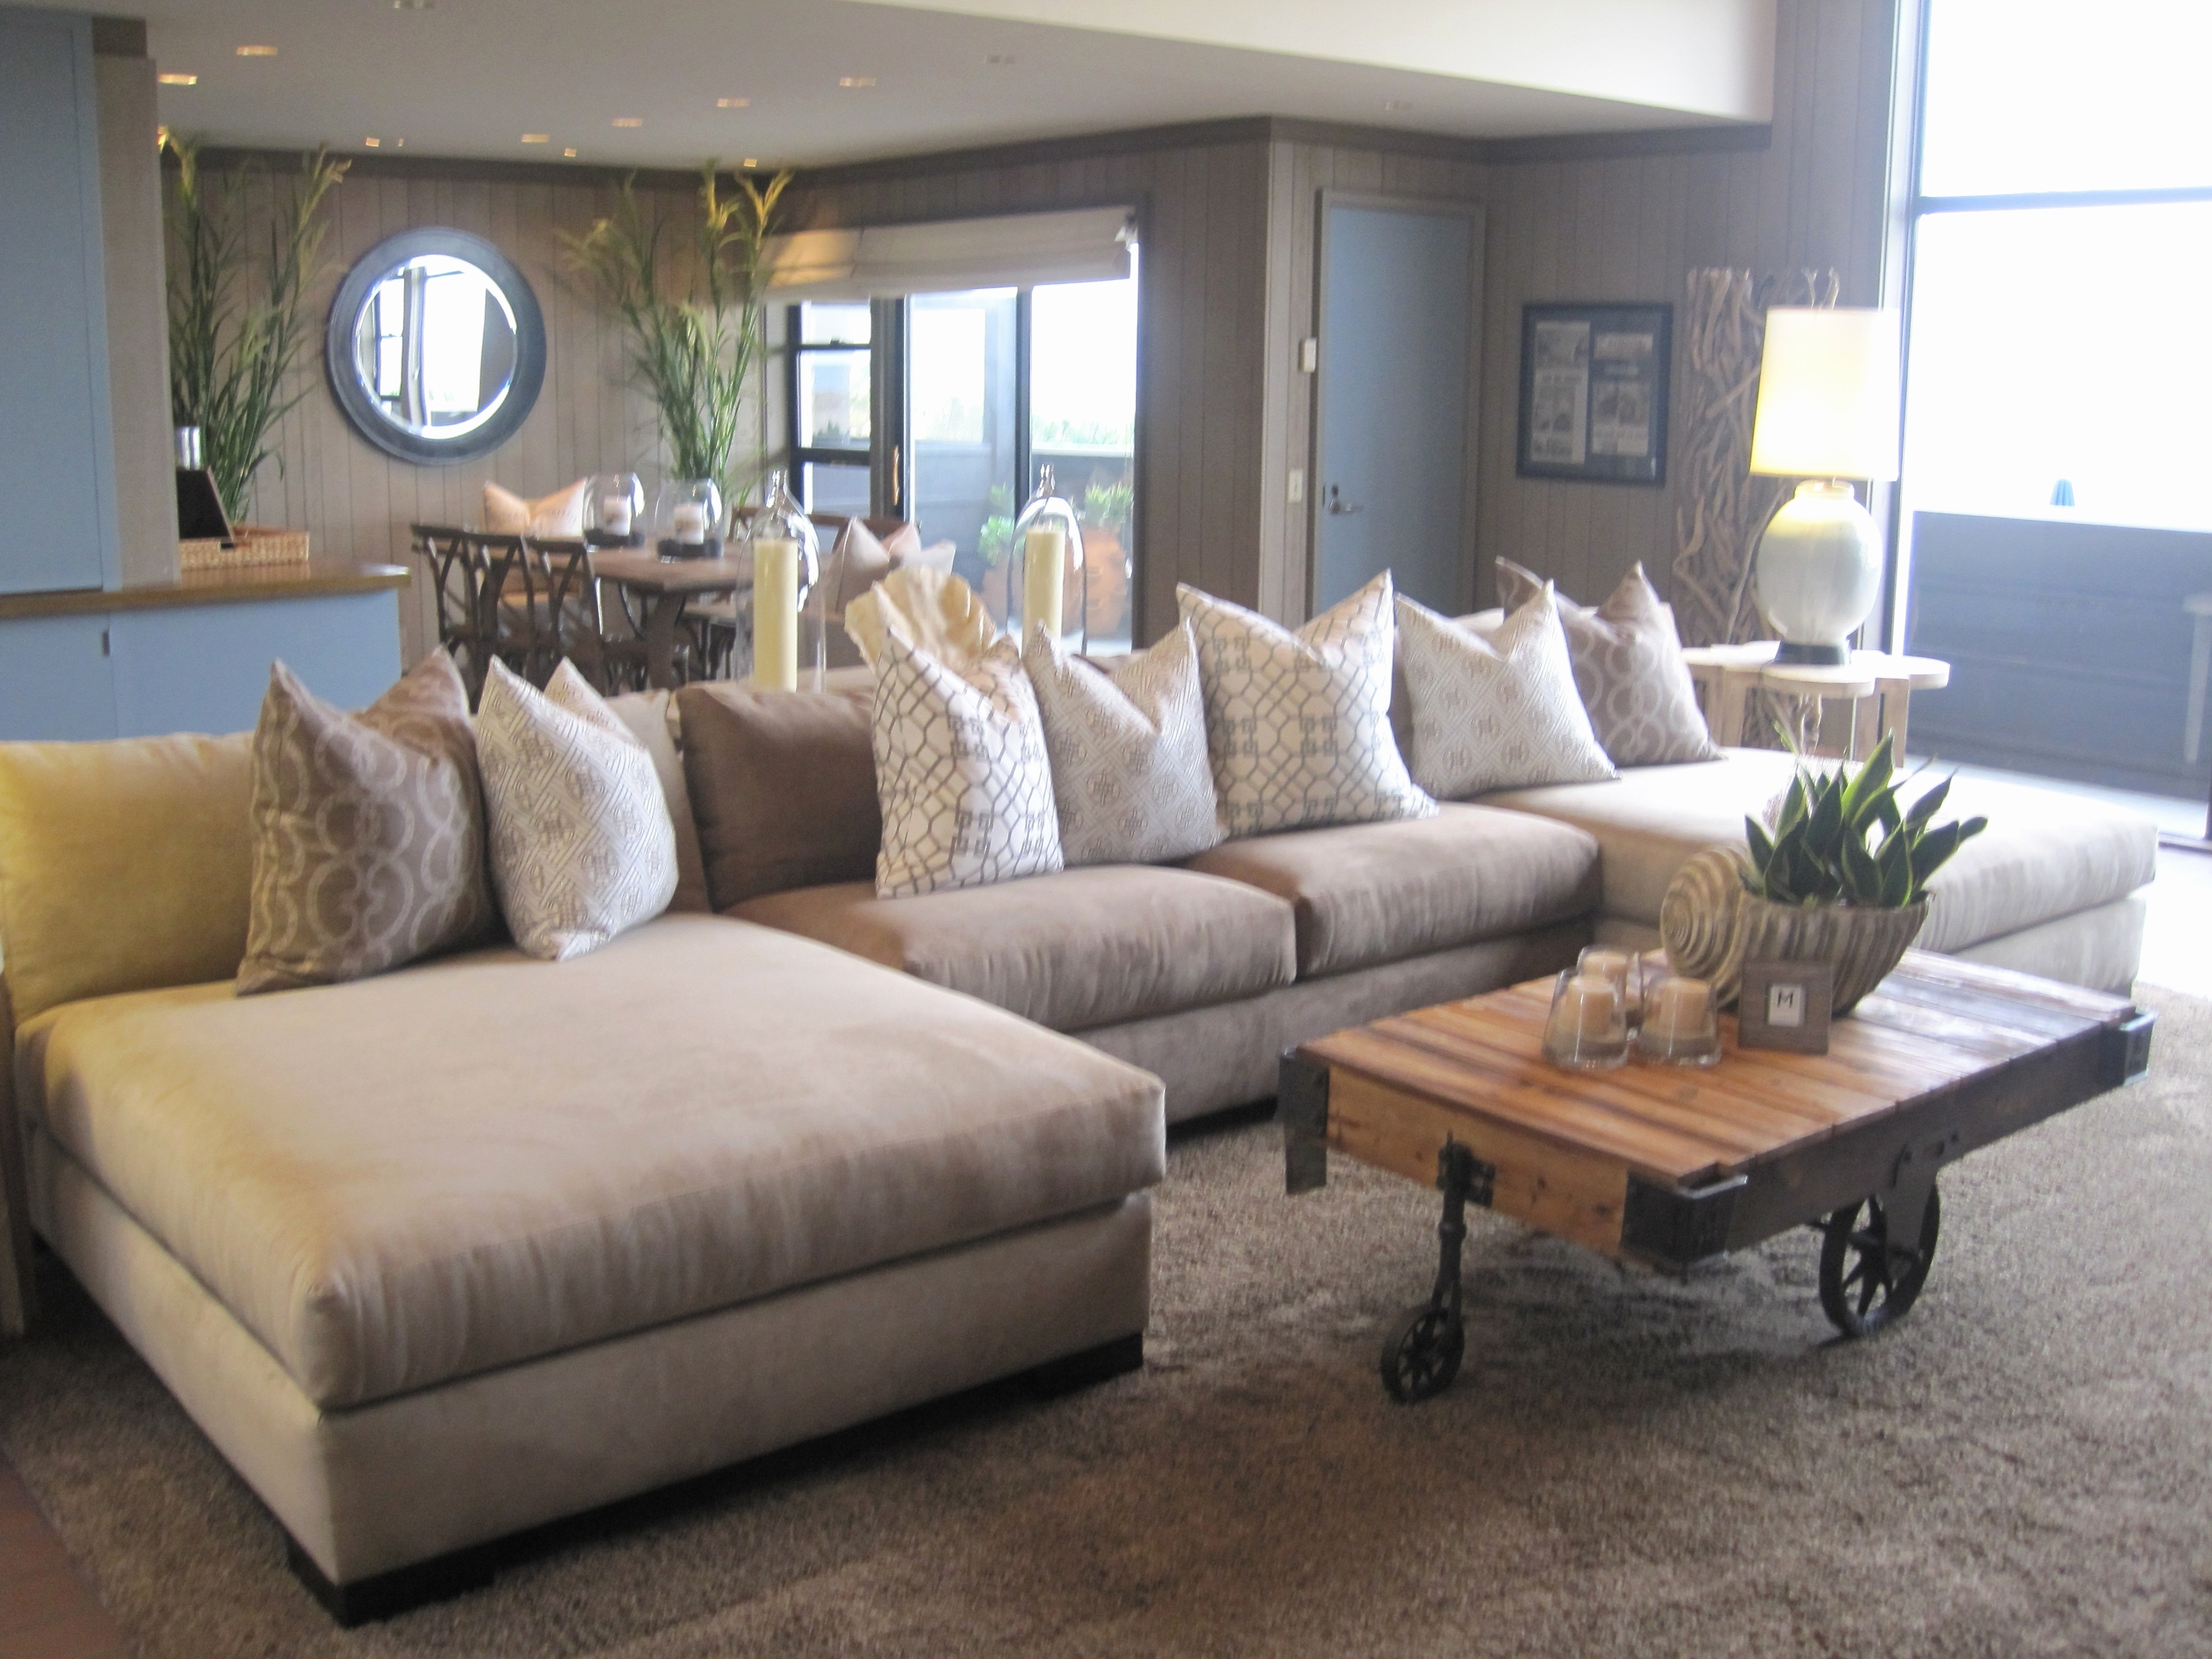 Popular Double Chaise Couches Regarding Elegant Large Chaise Lounge Sofa 2018 – Couches And Sofas Ideas (View 11 of 15)